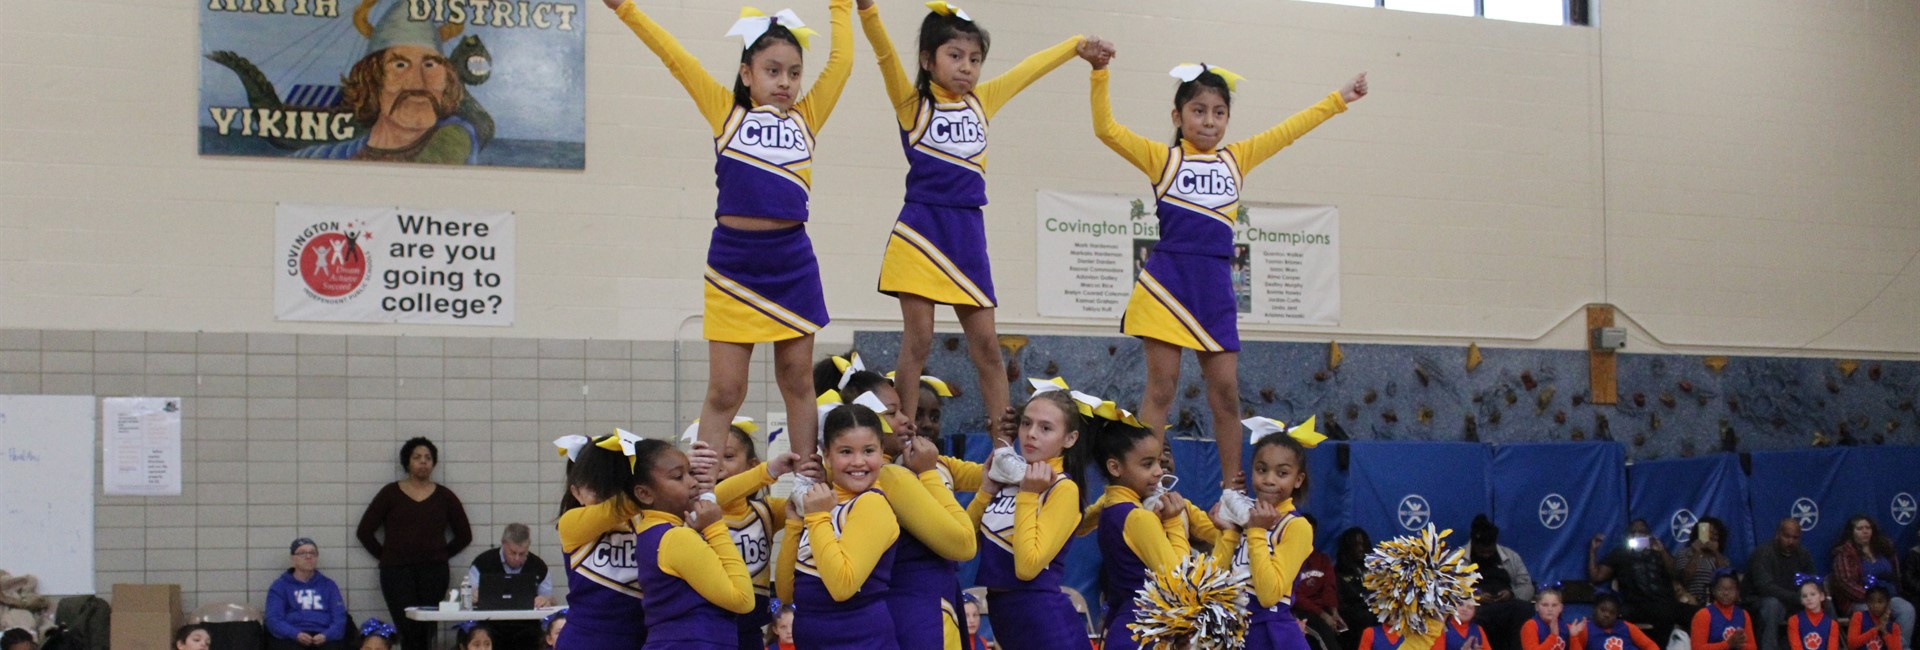 John G. Carlisle cheerleaders compete in the cheerleading competition.